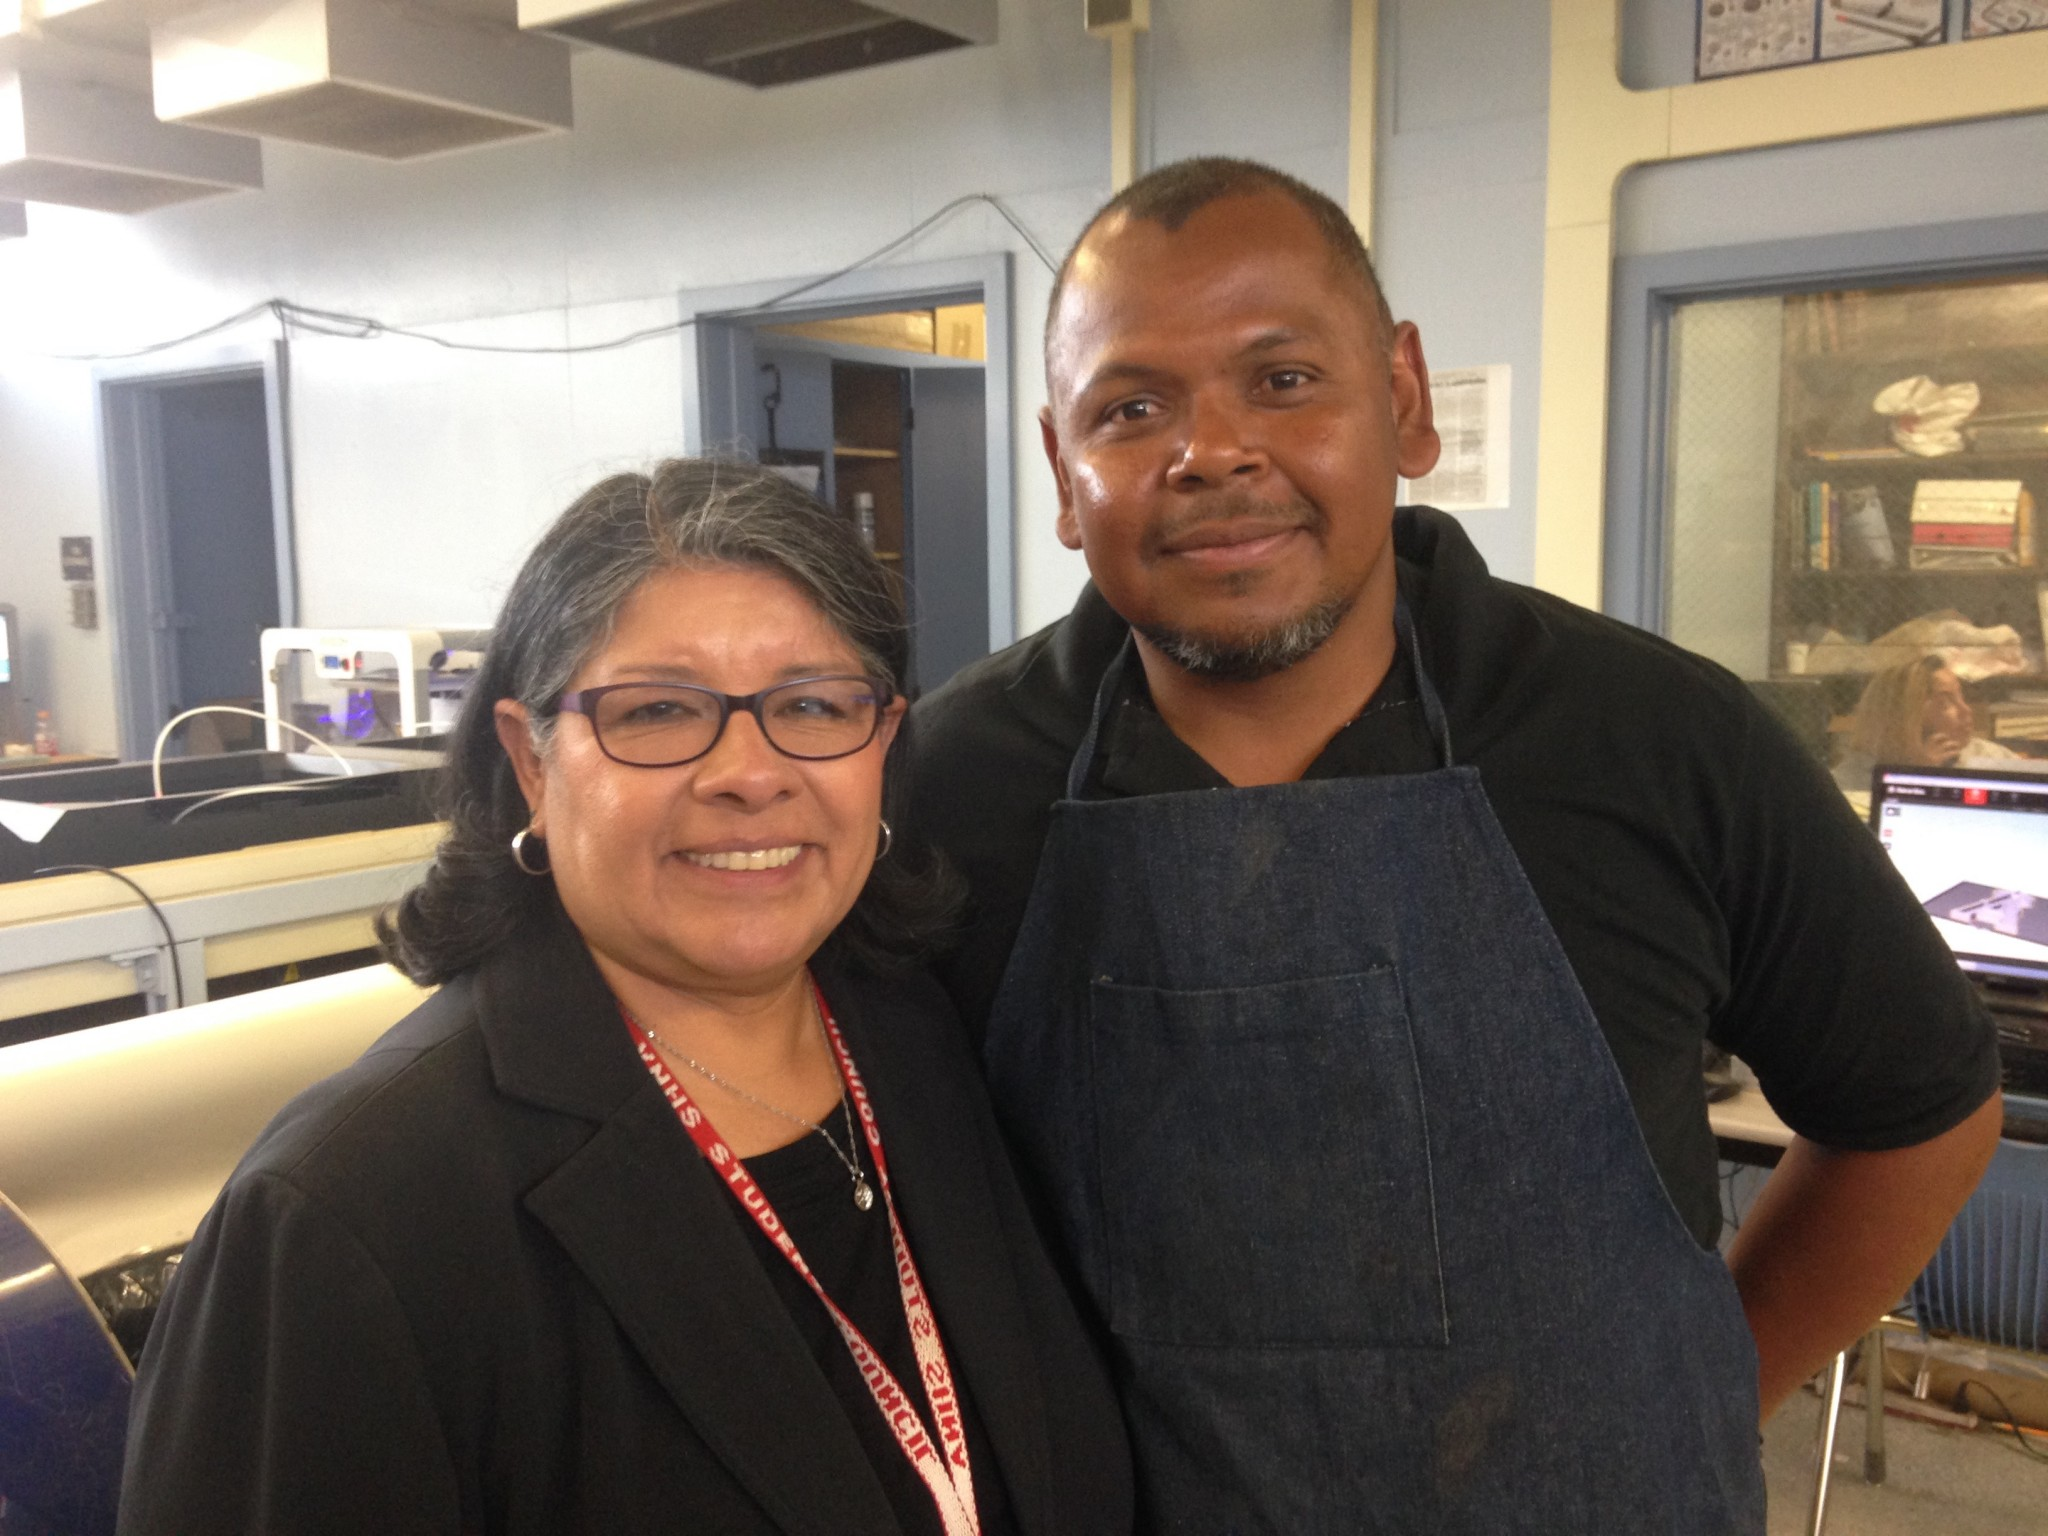 Van Nuys High School Principal Yolanda Gardea and Jose Castro, the school's machine class instructor. Photo by Avishay Artsy.